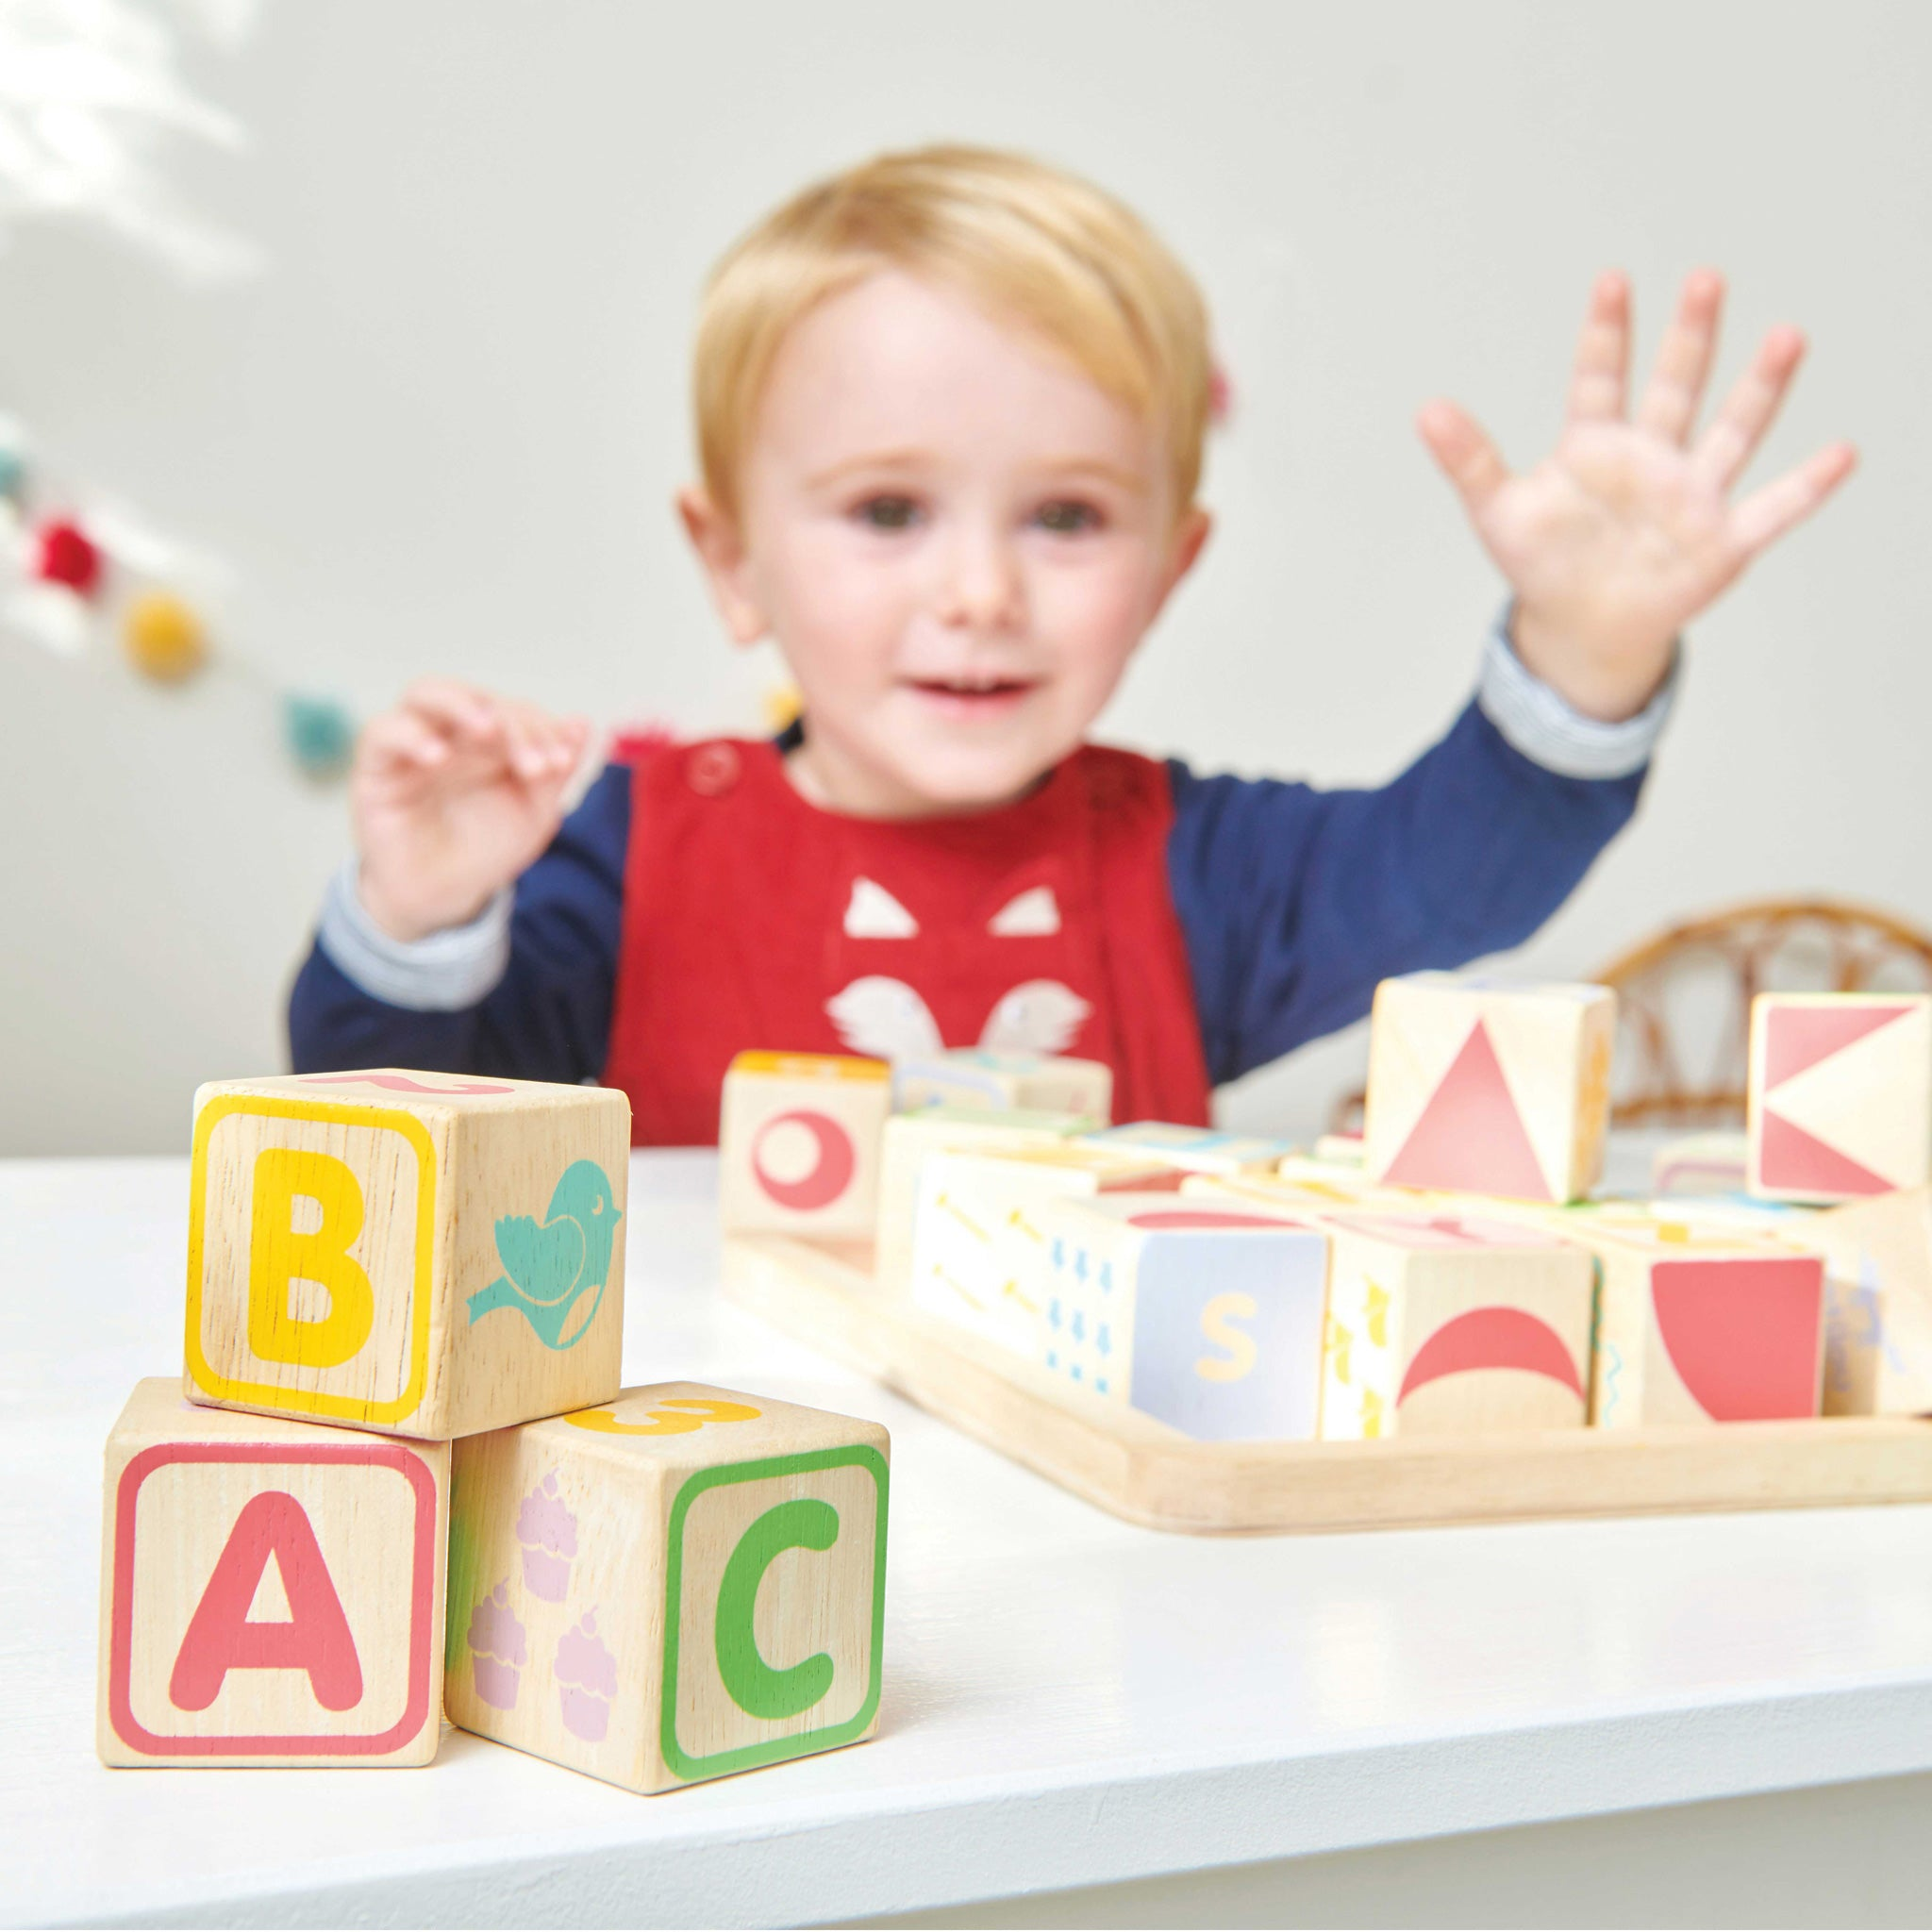 Abc Wooden Block